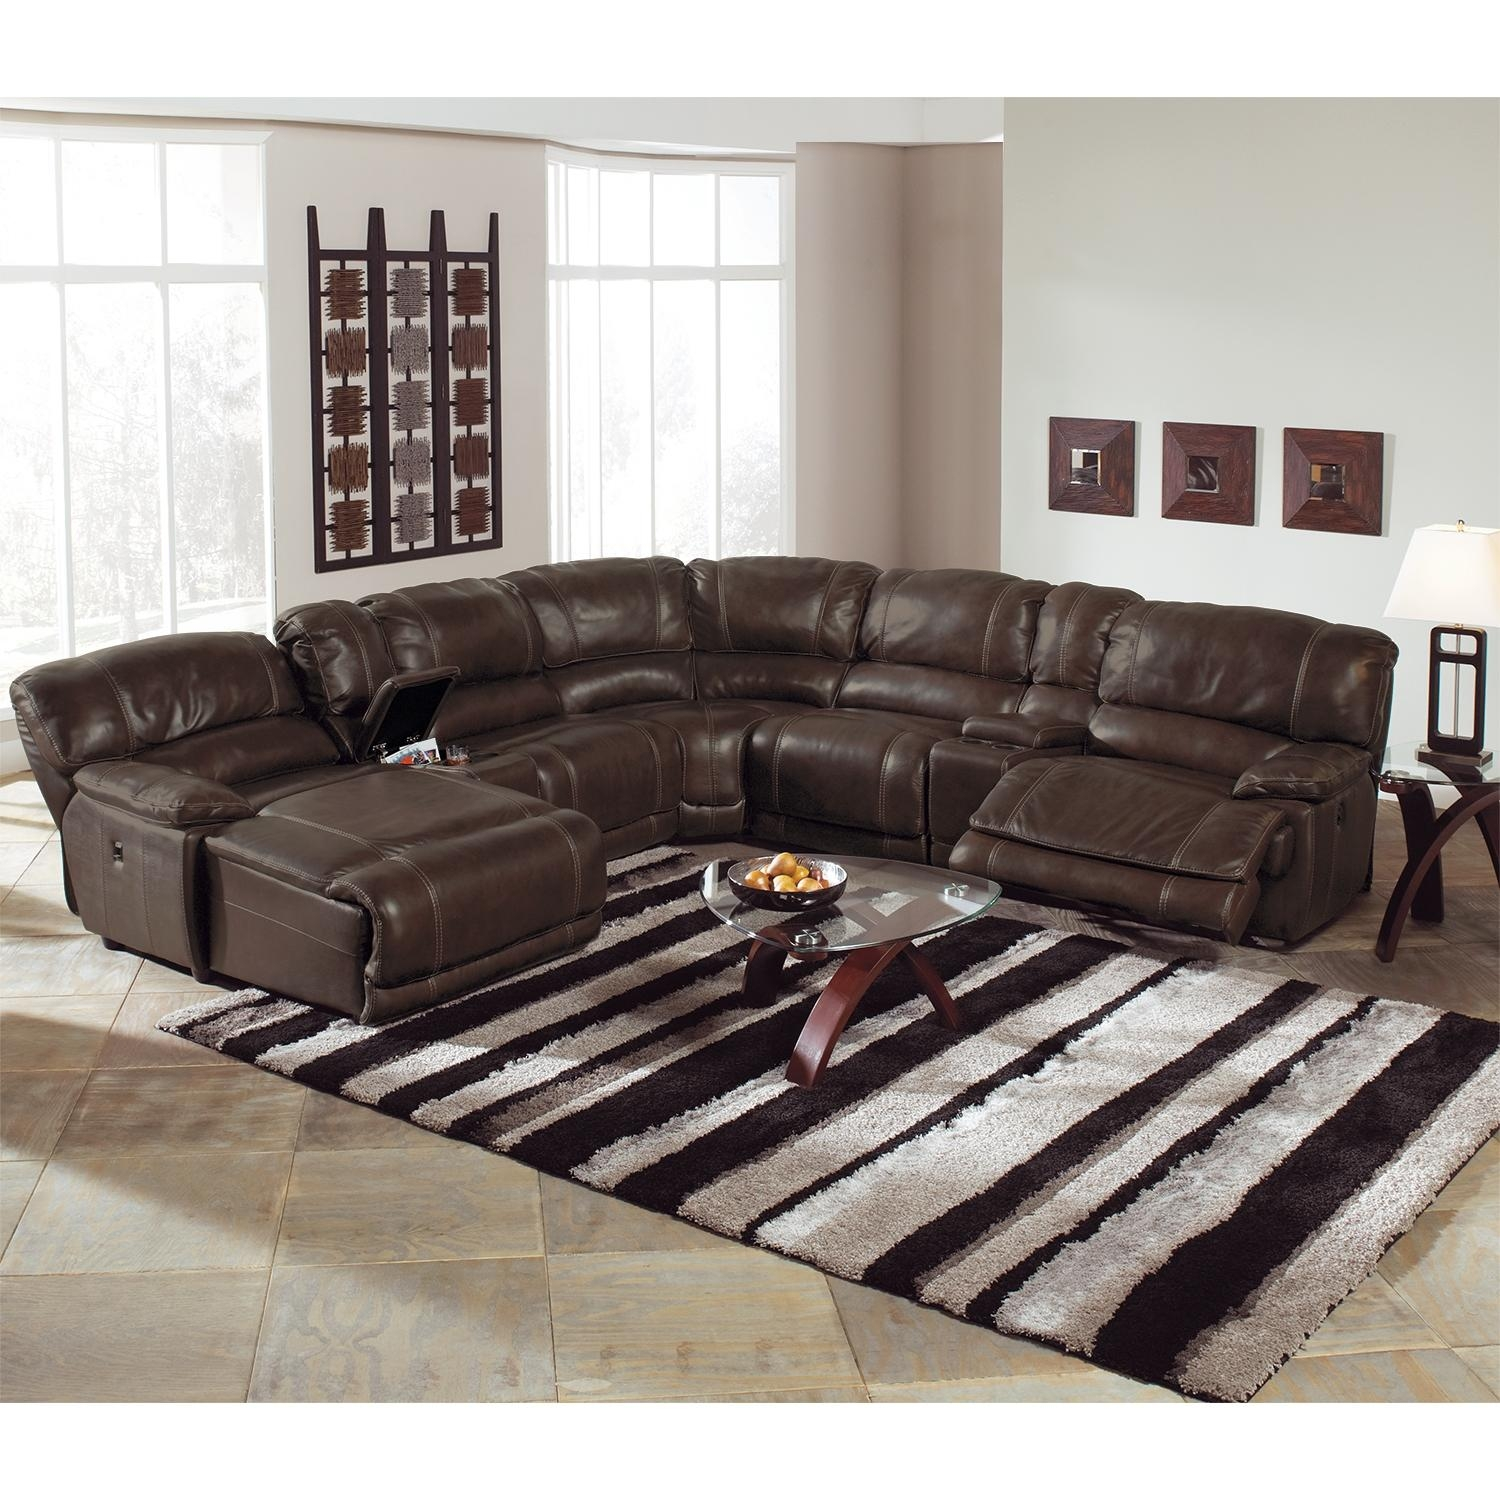 Catnapper Perez Power Reclining Sofa With Pillow Topped Cushions For Sectional Sofas With Electric Recliners (Image 4 of 22)